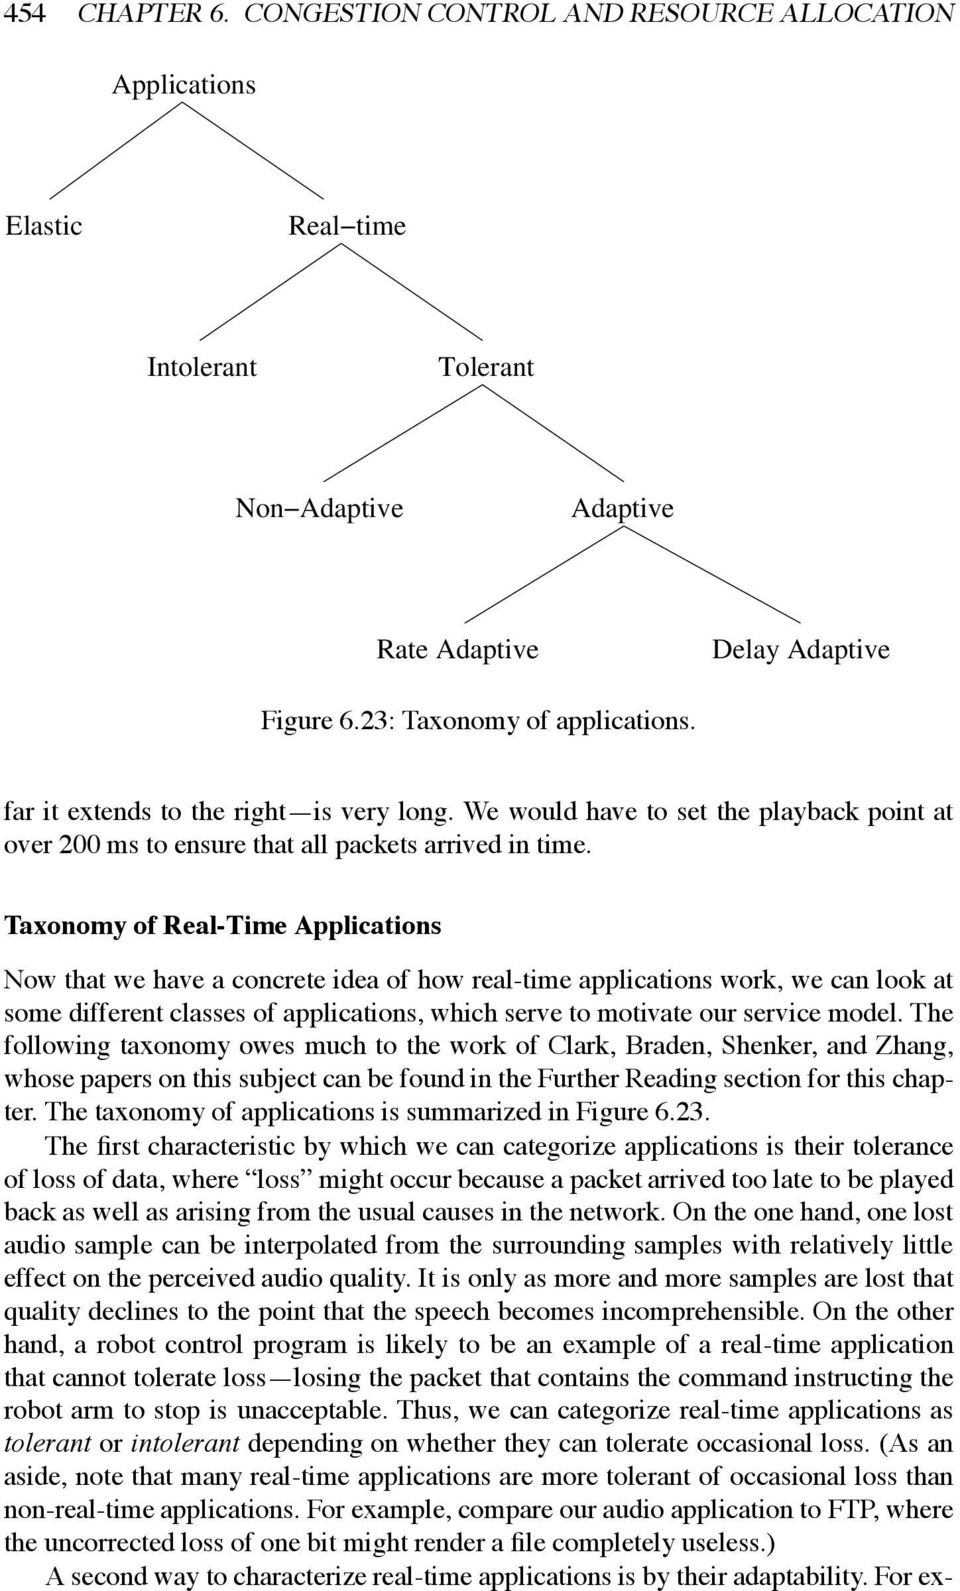 Taxonomy of Real-Time Applications Now that we have a concrete idea of how real-time applications work, we can look at some different classes of applications, which serve to motivate our service